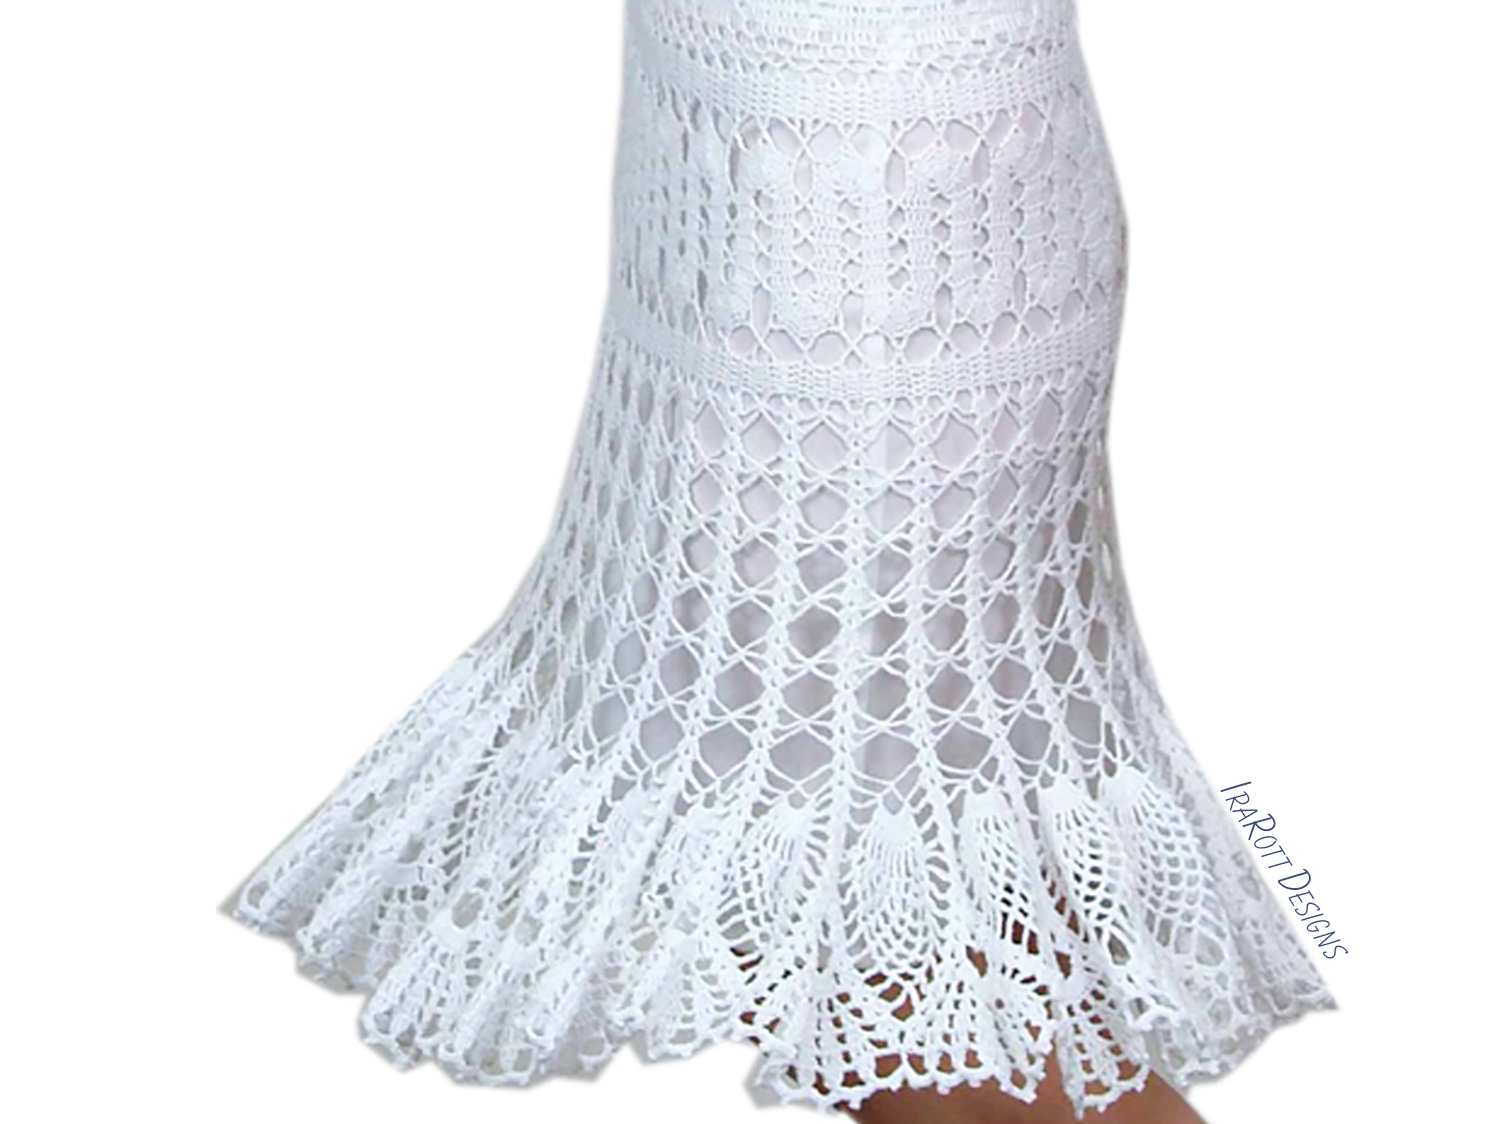 Bruges Crochet Lace Skirt PDF Crochet Pattern - IraRott Inc.